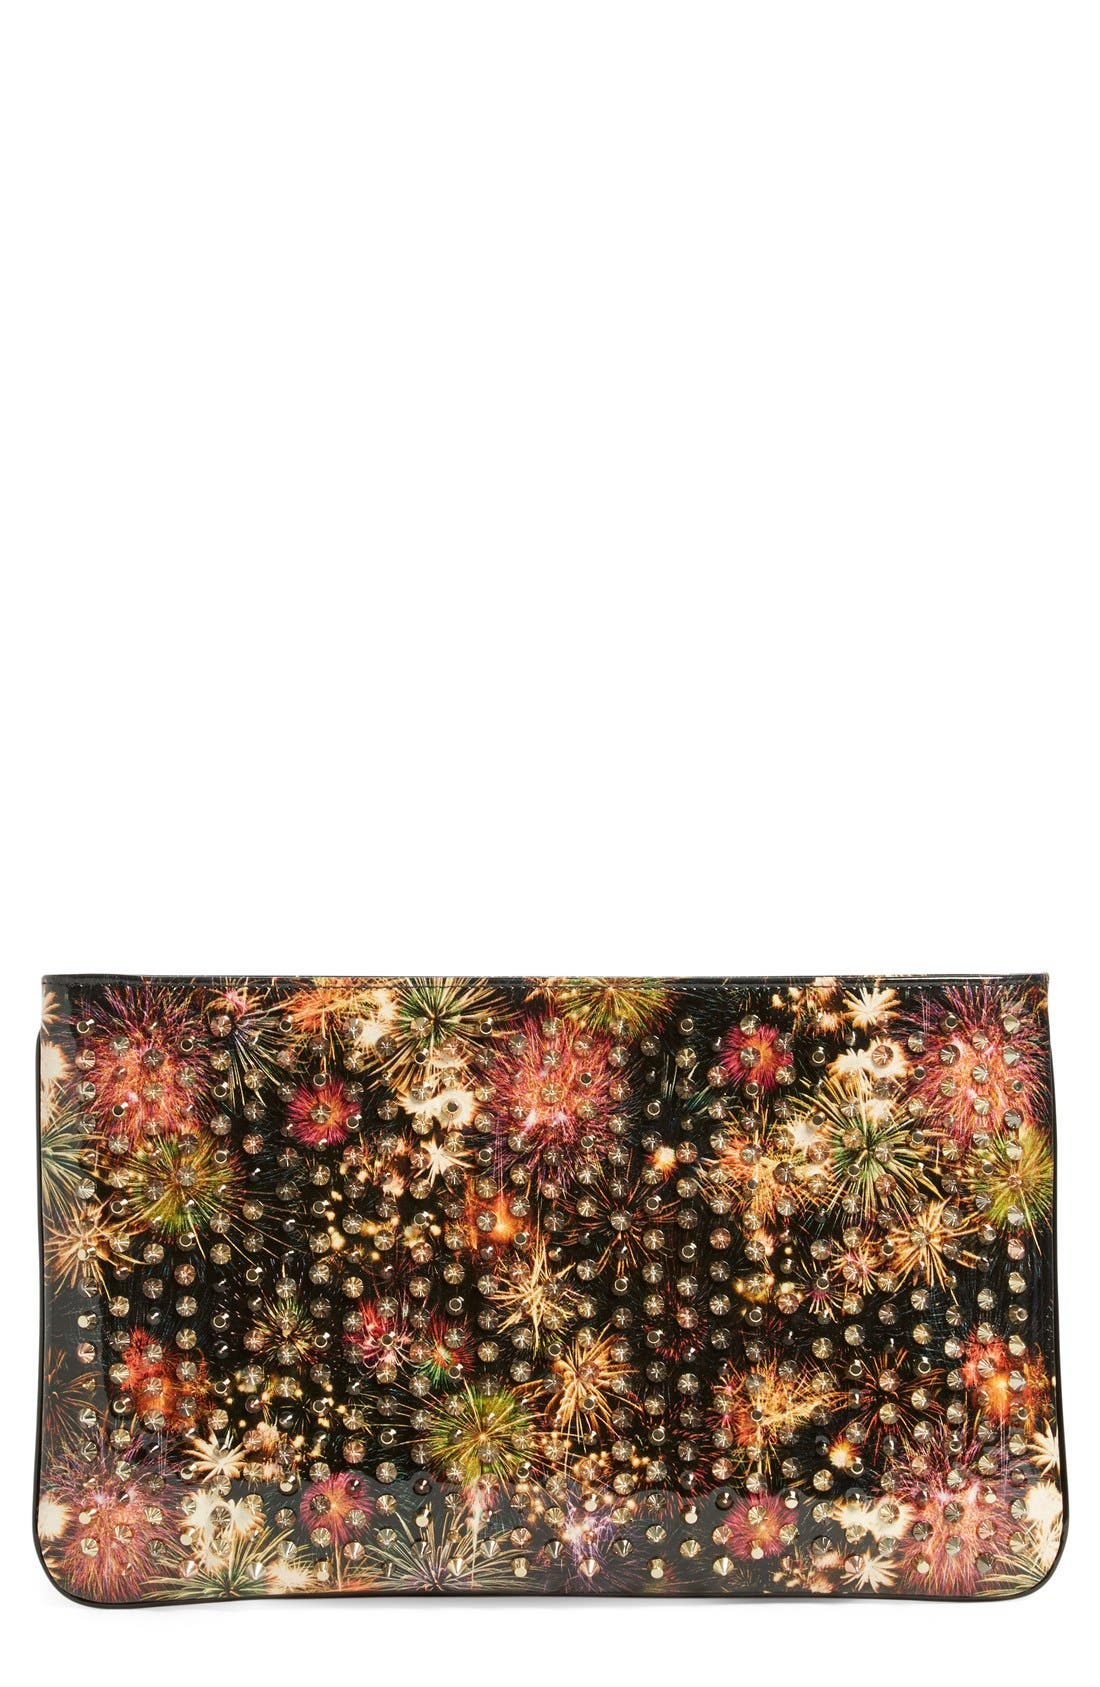 Alternate Image 1 Selected - Christian Louboutin 'Loubiposh - Firework' Clutch